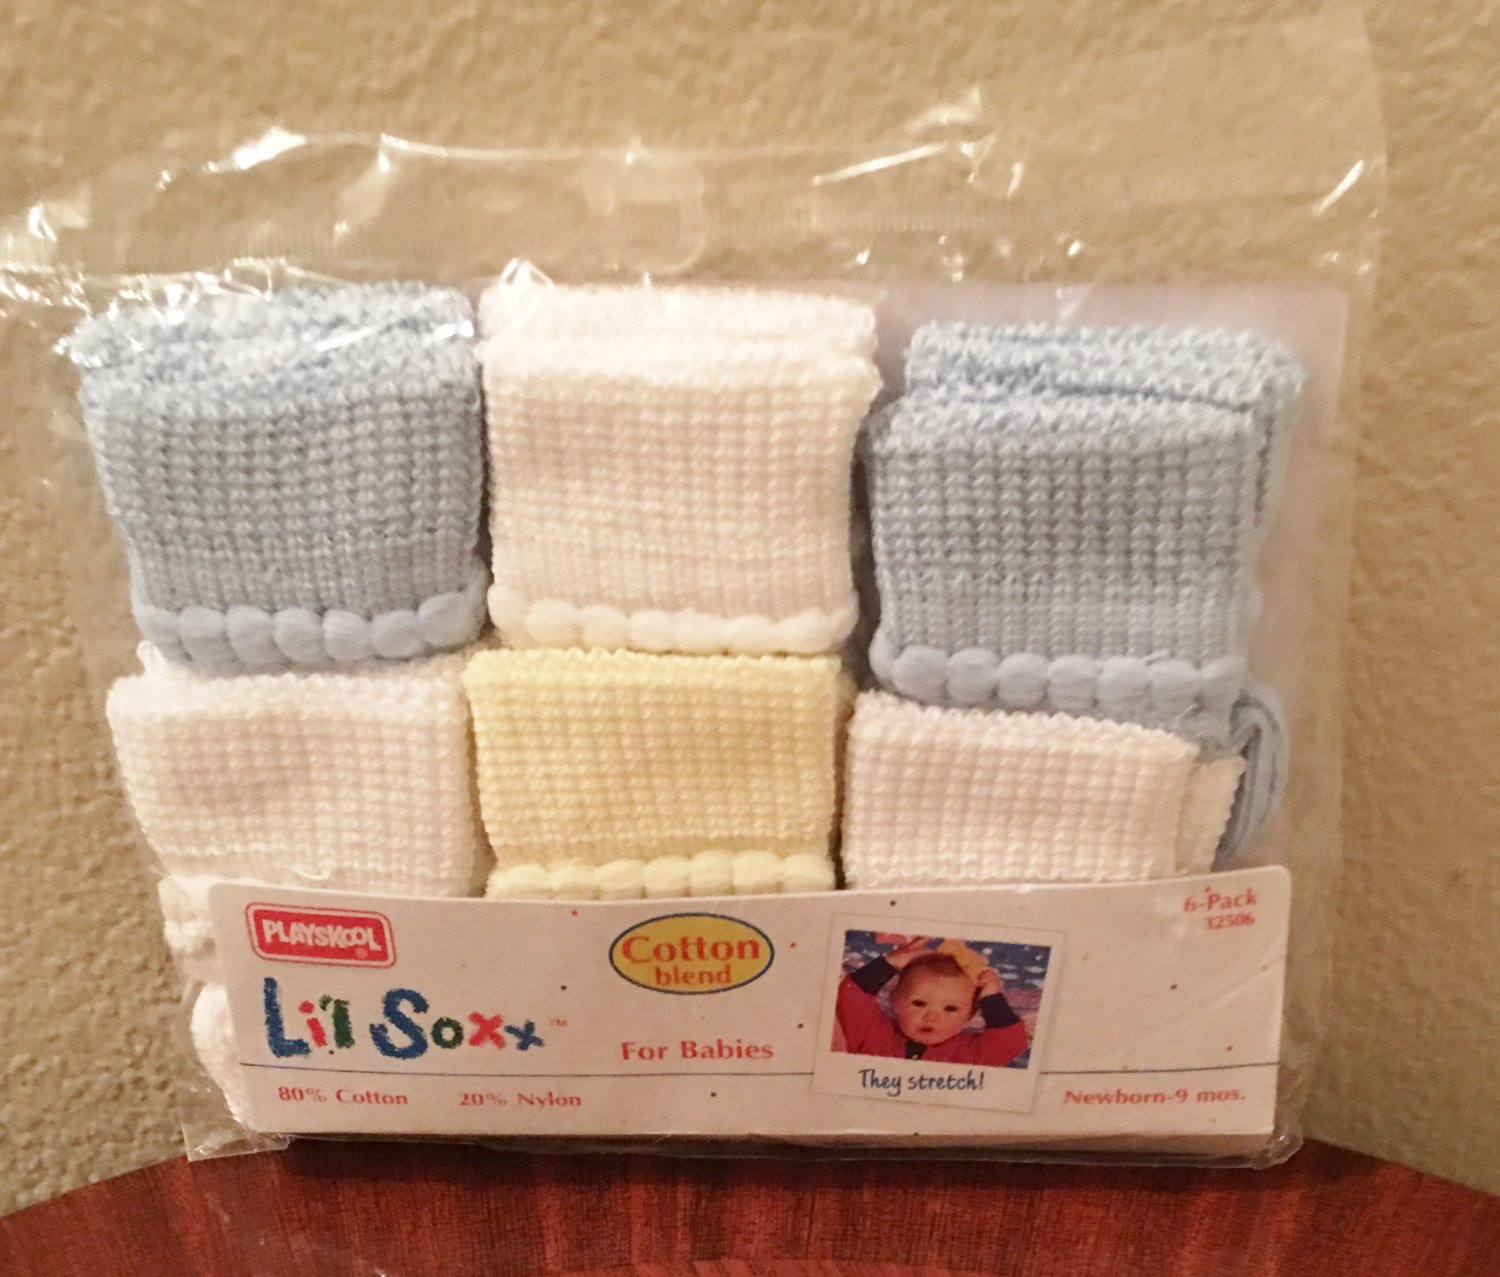 New BABY Li'l Soxx Playschool Infant 6 PACK Socks Newborn-9 Months Pastels Cotton Blend